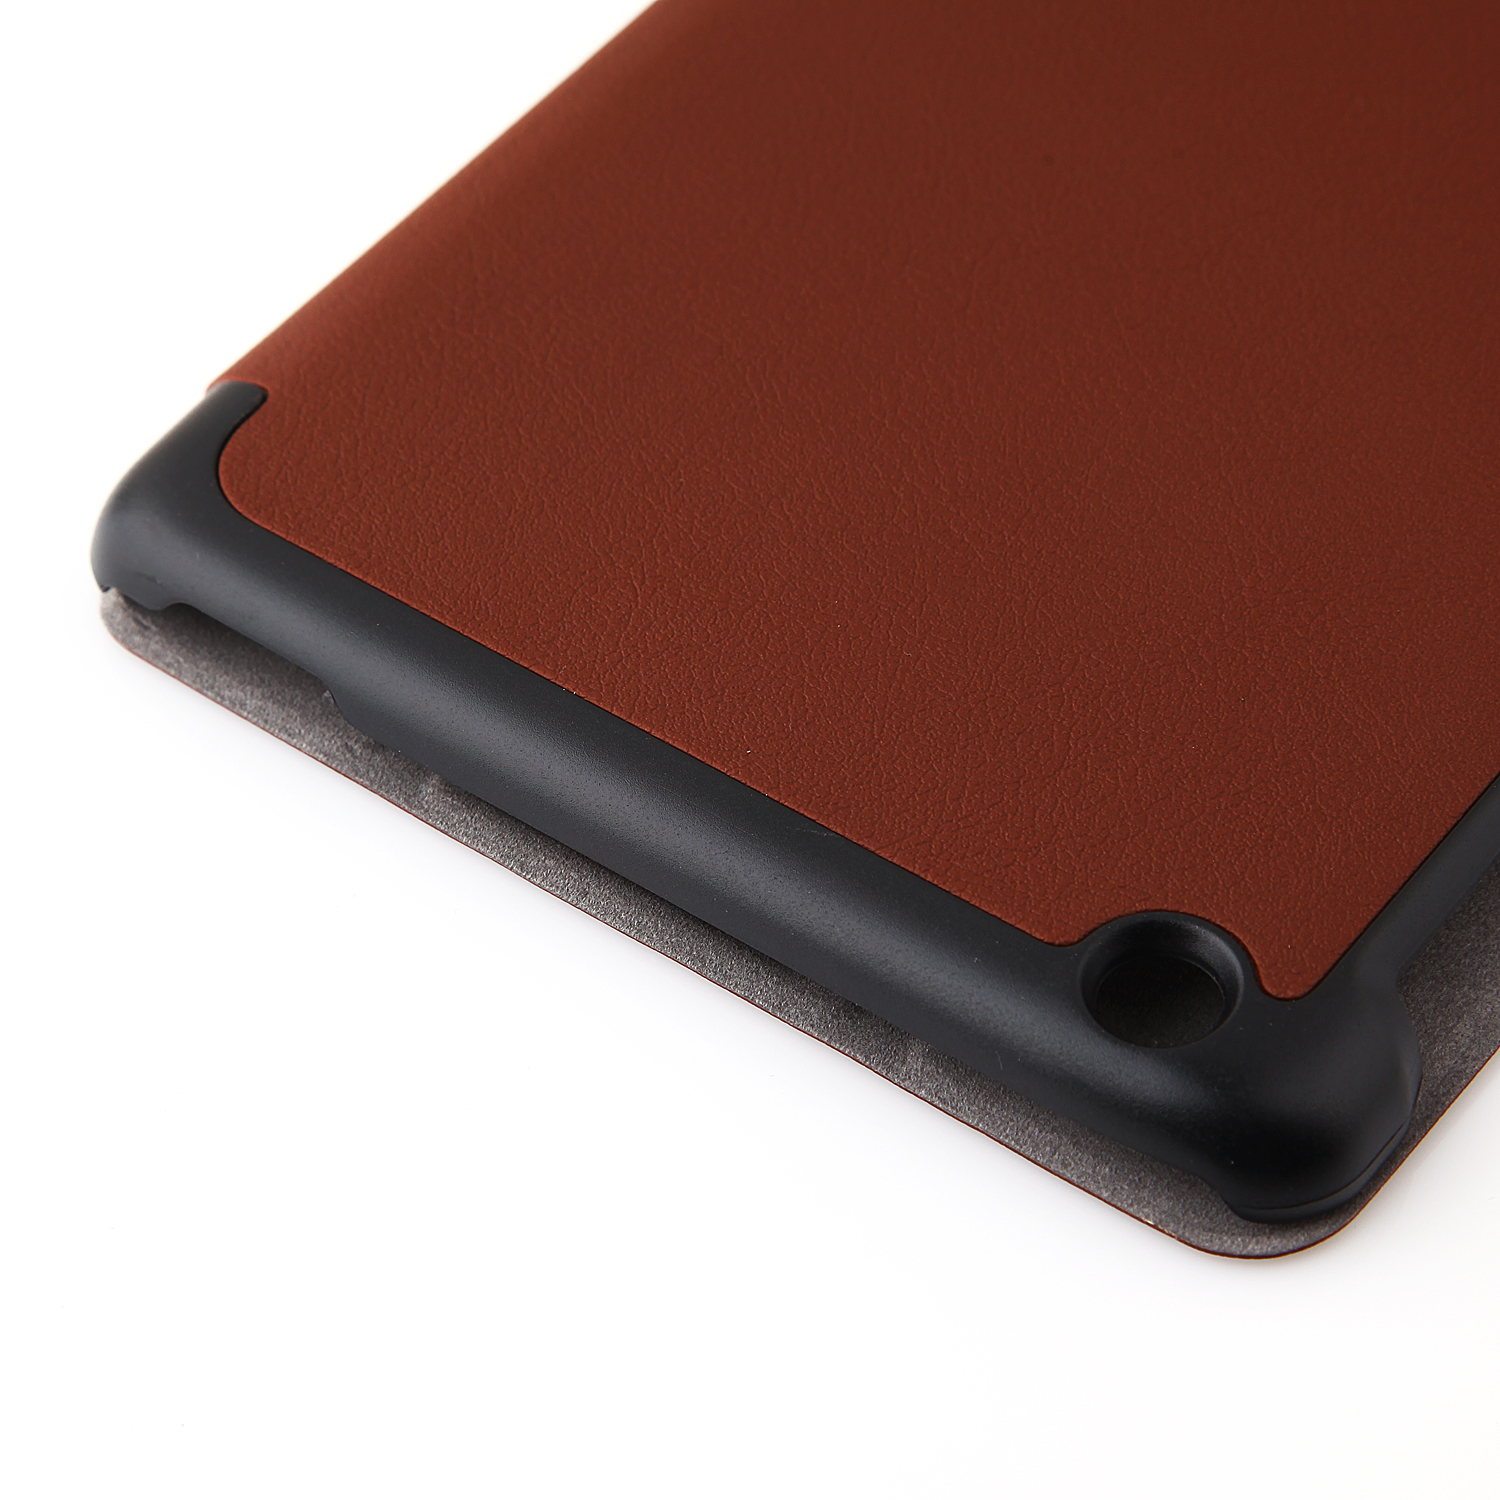 Protective PU Leather Stand Case Cover for Lenovo A8/A5500 Tablet PC Brown